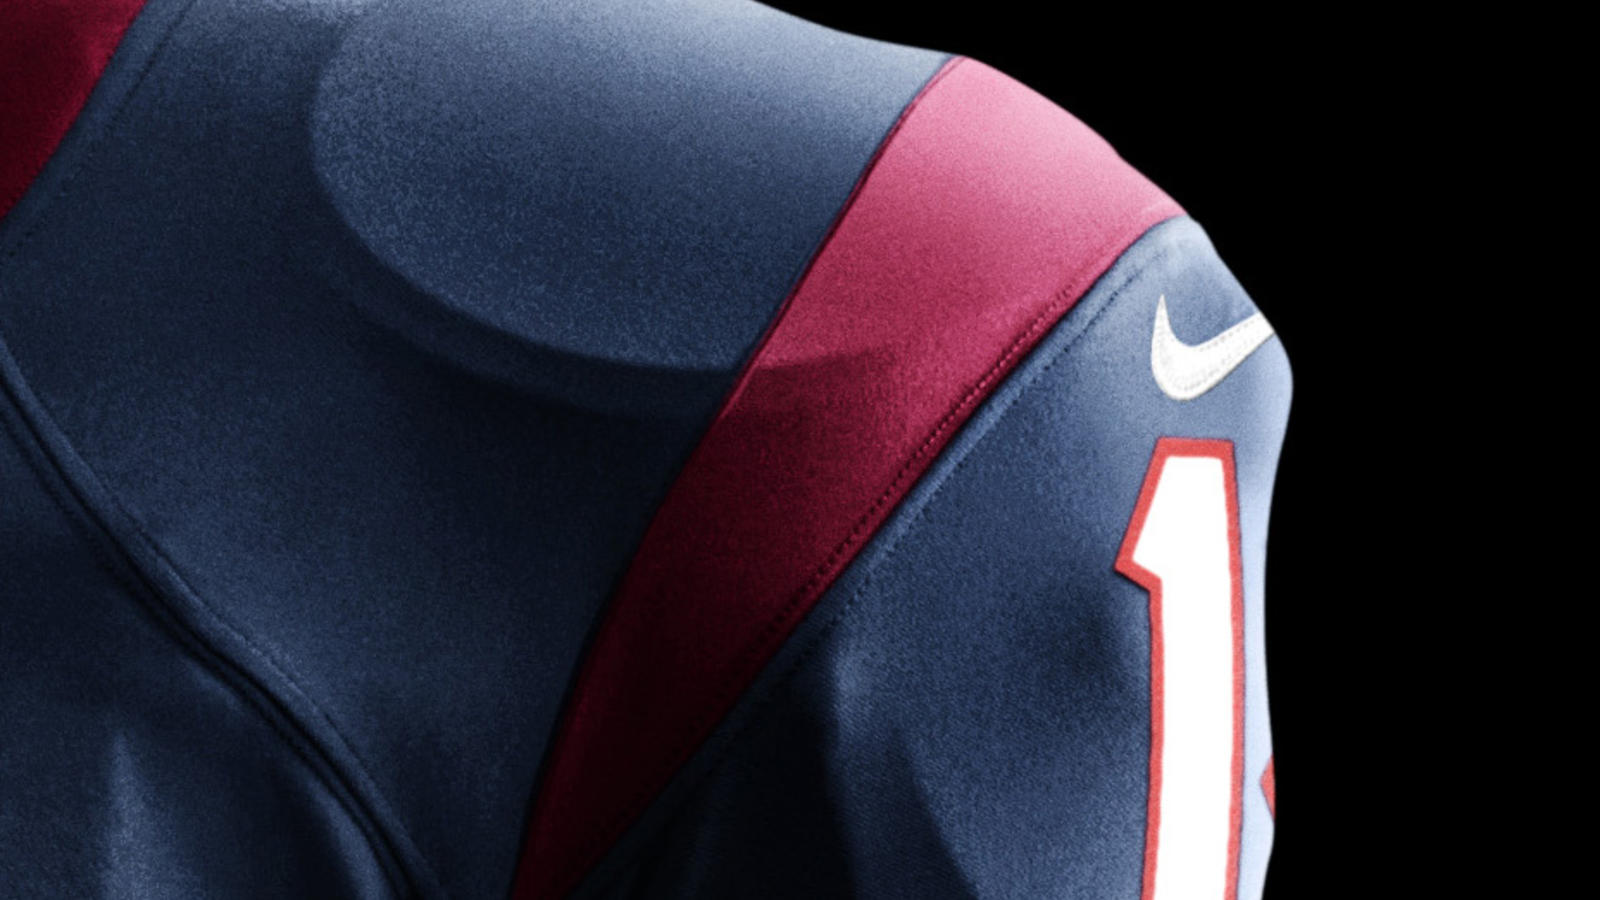 SU12_AT_NFL_UNIFORM_SHOULDER_TEXANS